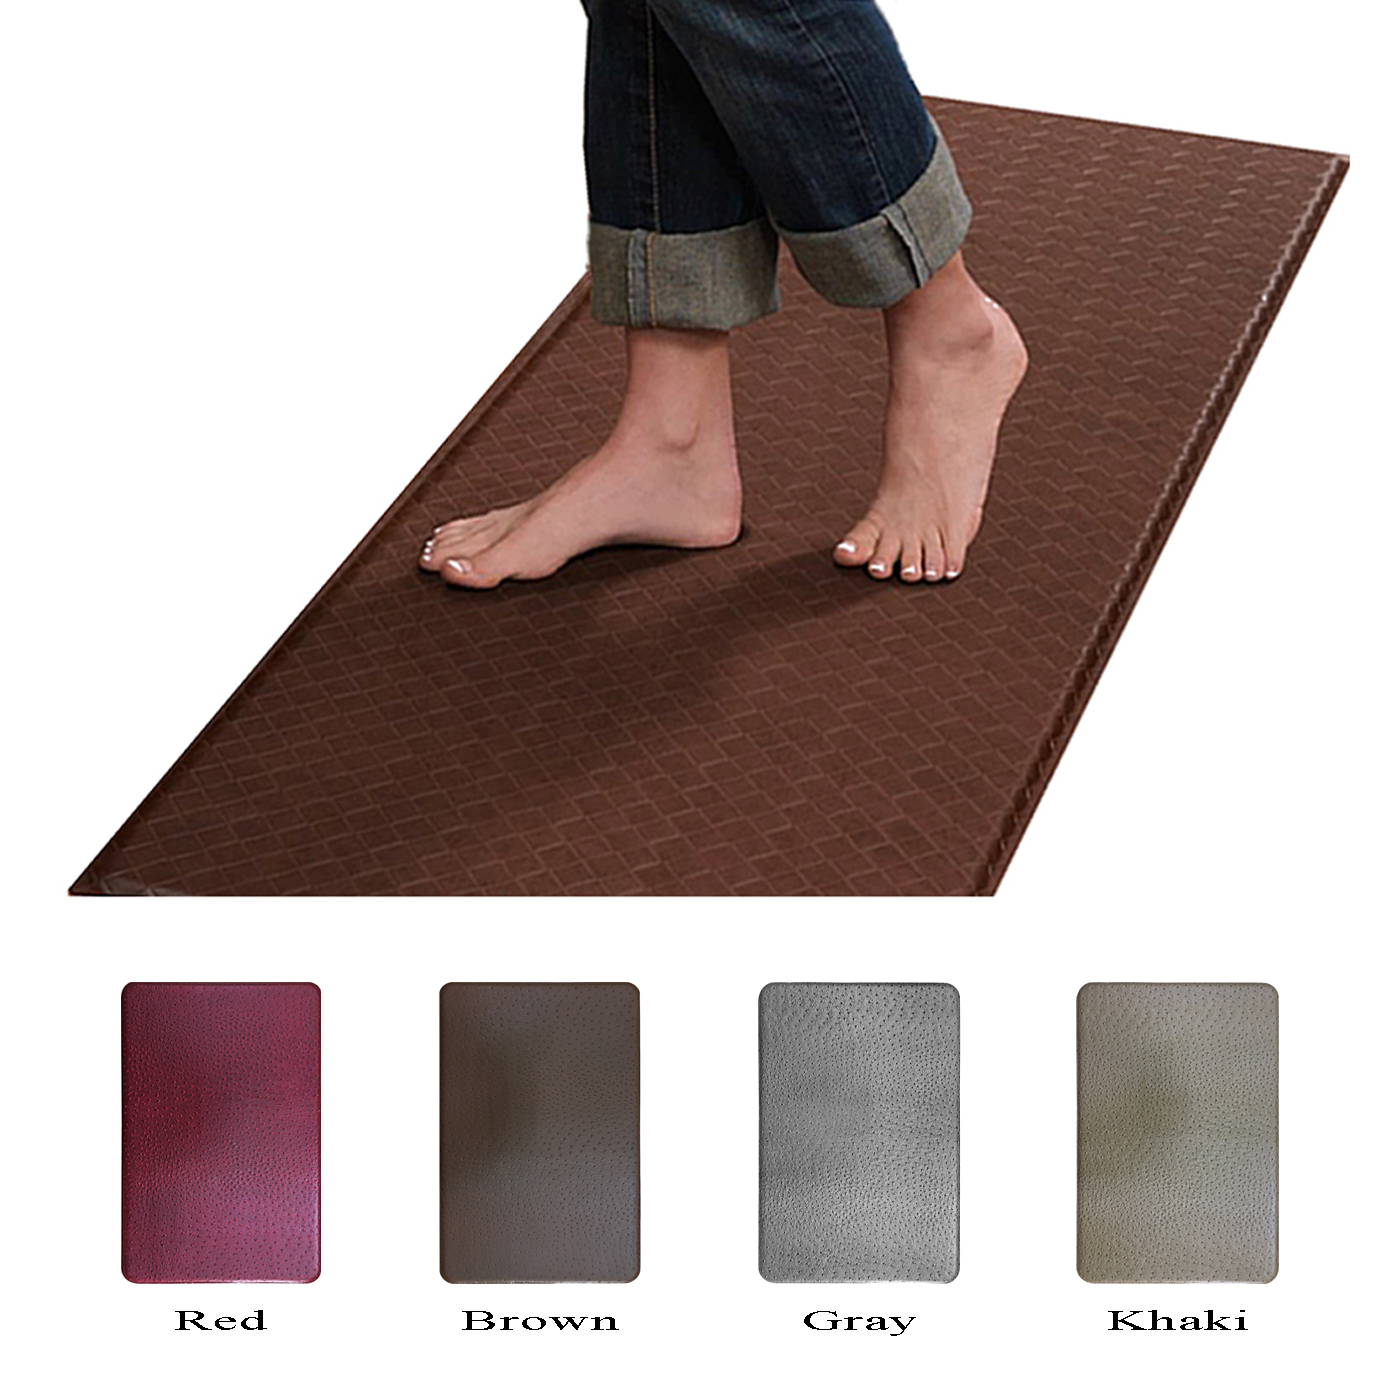 Cushion Comfort Anti Fatigue Kitchen Floor Mat Rug